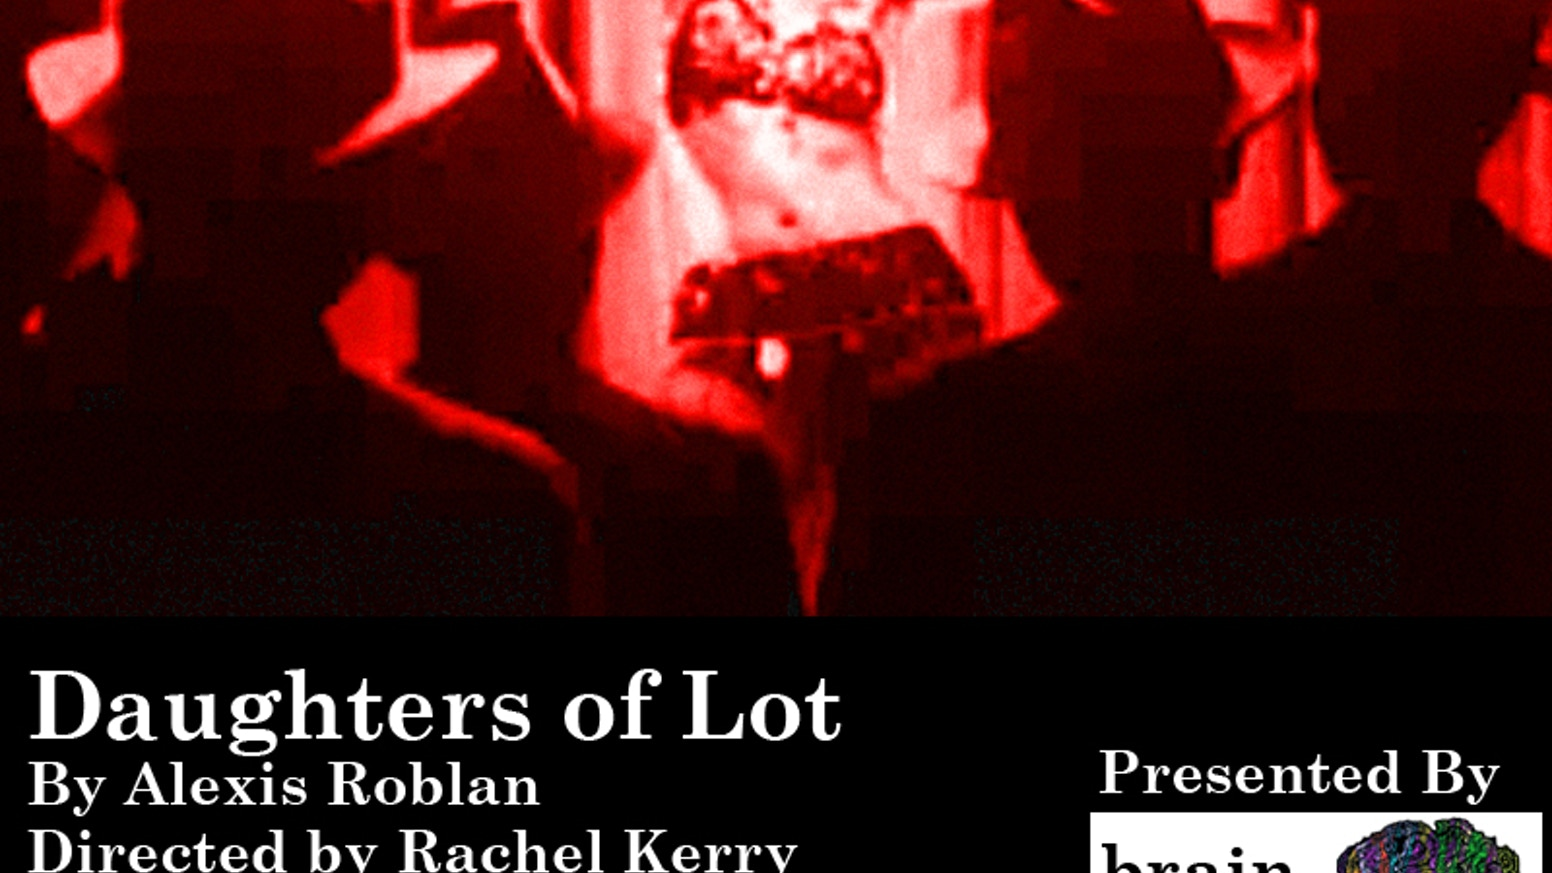 Brain Melt Consortium Presents a Staged Reading of Daughters of Lot